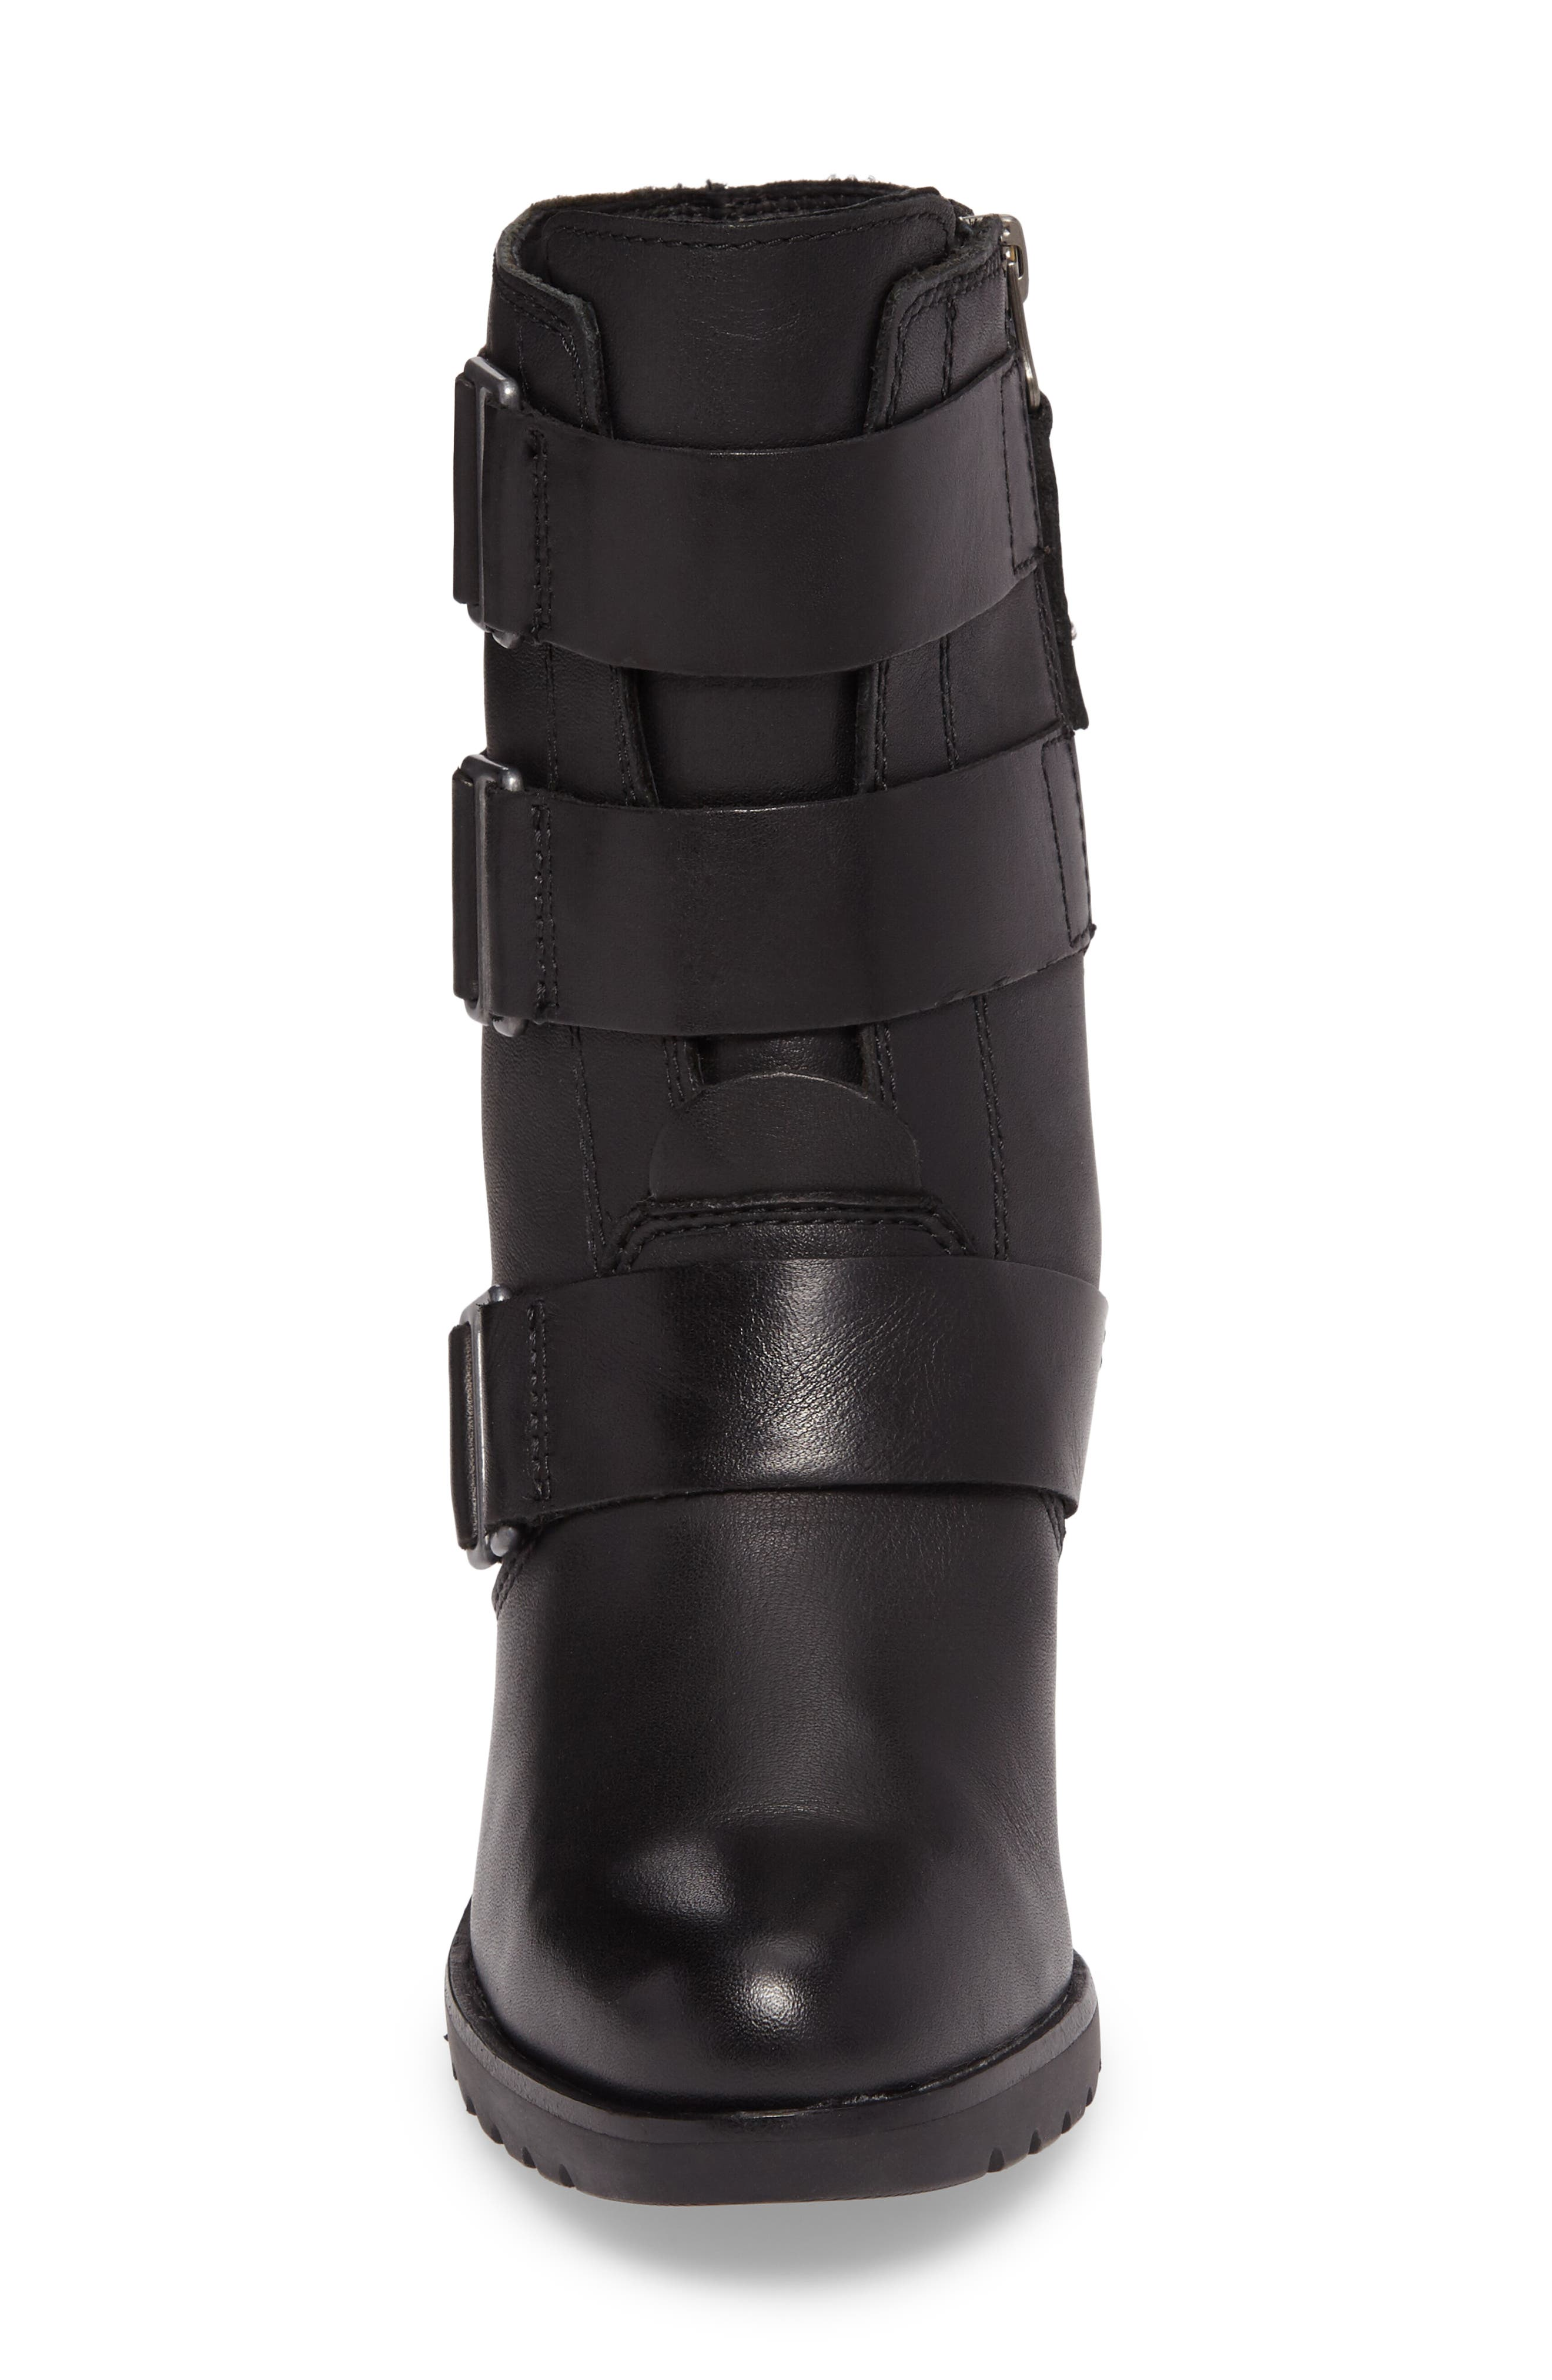 After Hours Waterproof Bootie,                             Alternate thumbnail 10, color,